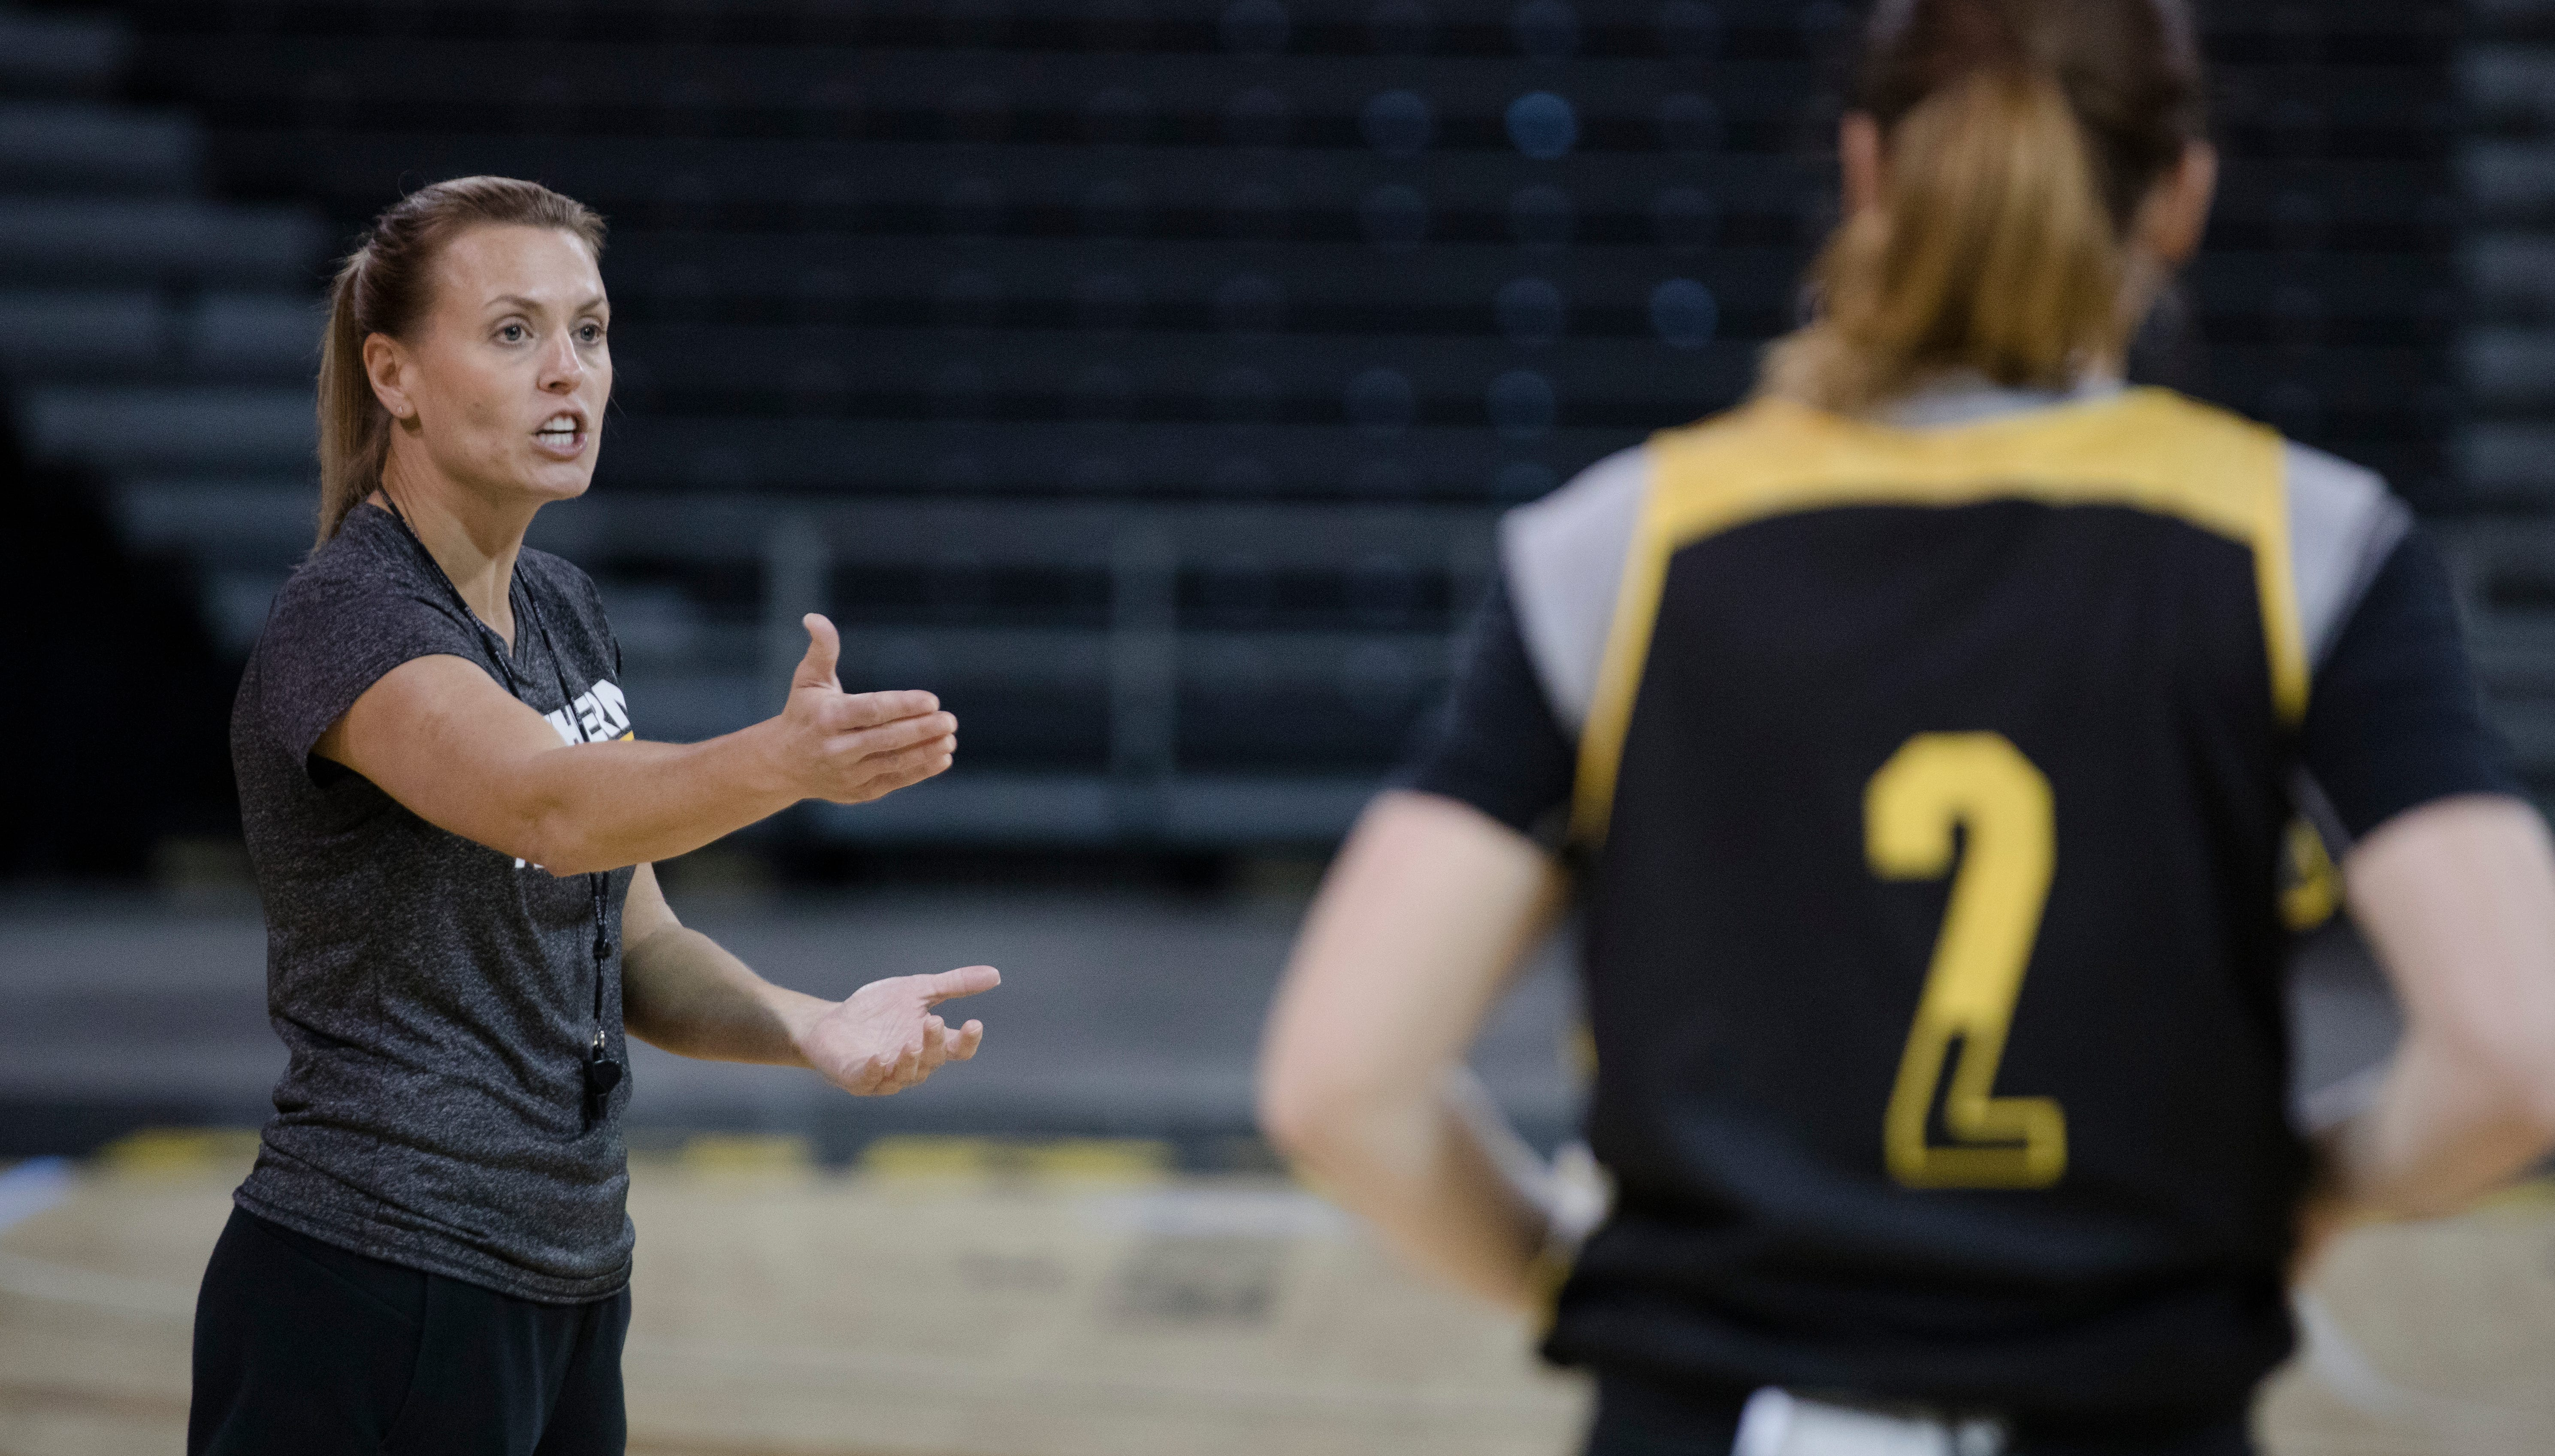 Northern Kentucky Norse coach Camryn Whitaker during NKU's basketball media day on Tuesday, Oct. 23, 2018 in Newport, Ky.